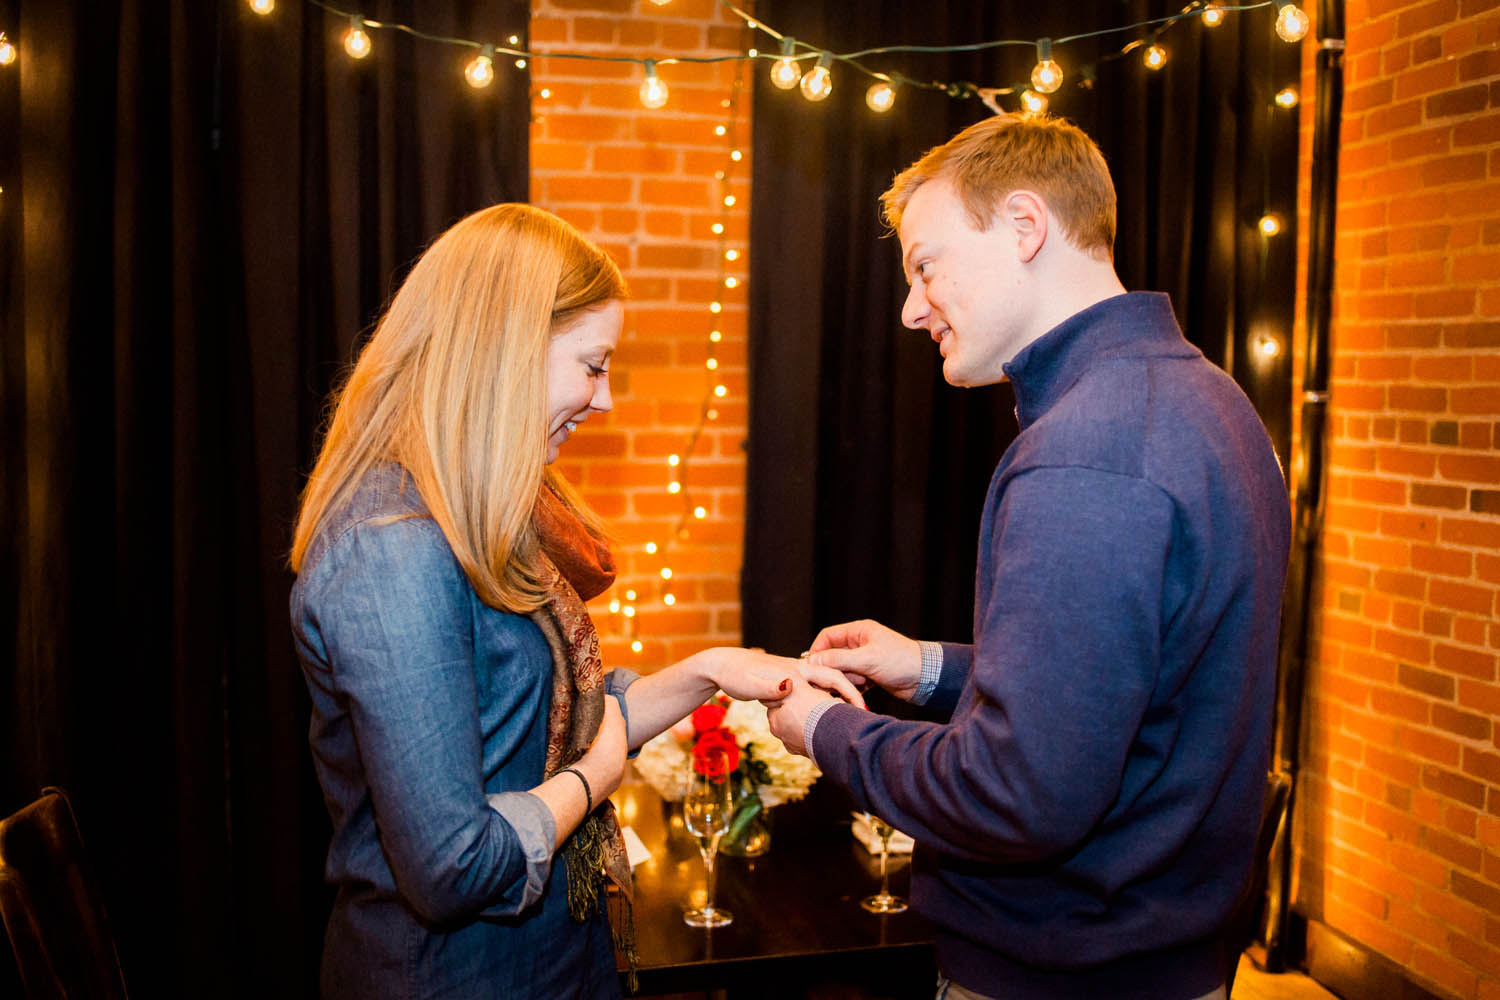 proposal-photos-minneapolis-bernadette-pollard-0028.jpg